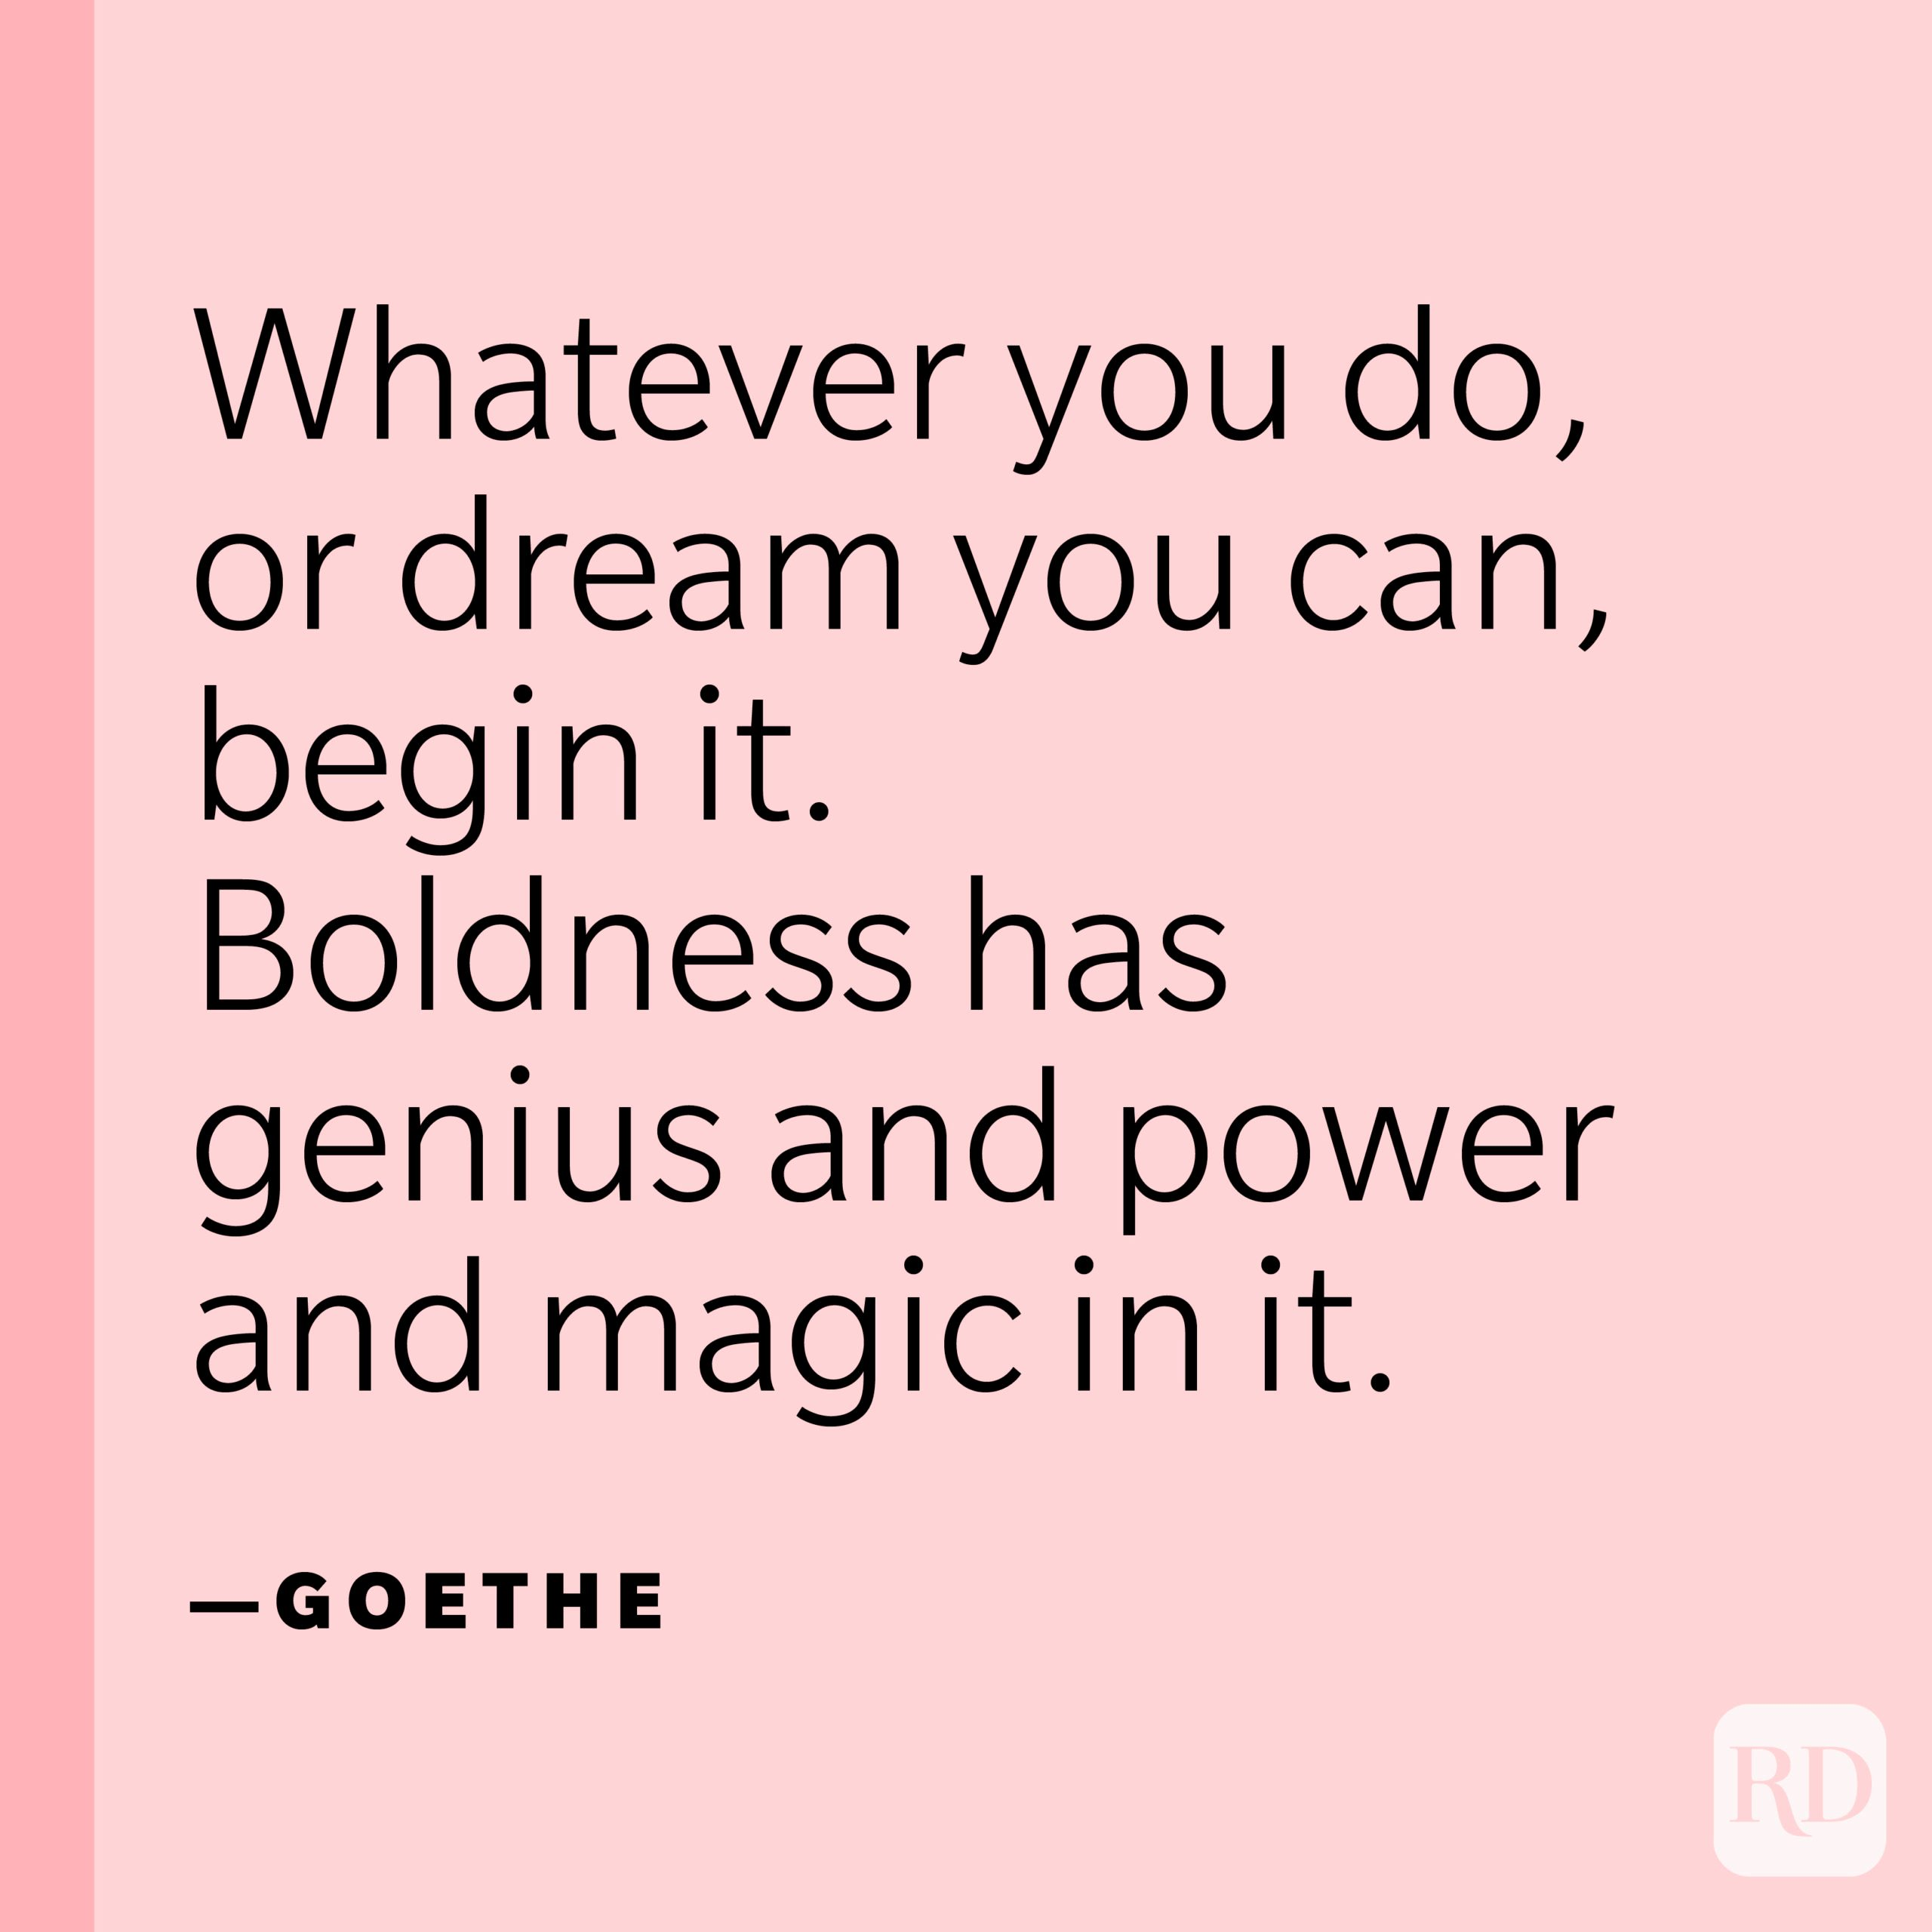 """""""Whatever you do, or dream you can, begin it. Boldness has genius and power and magic in it."""" —Goethe"""